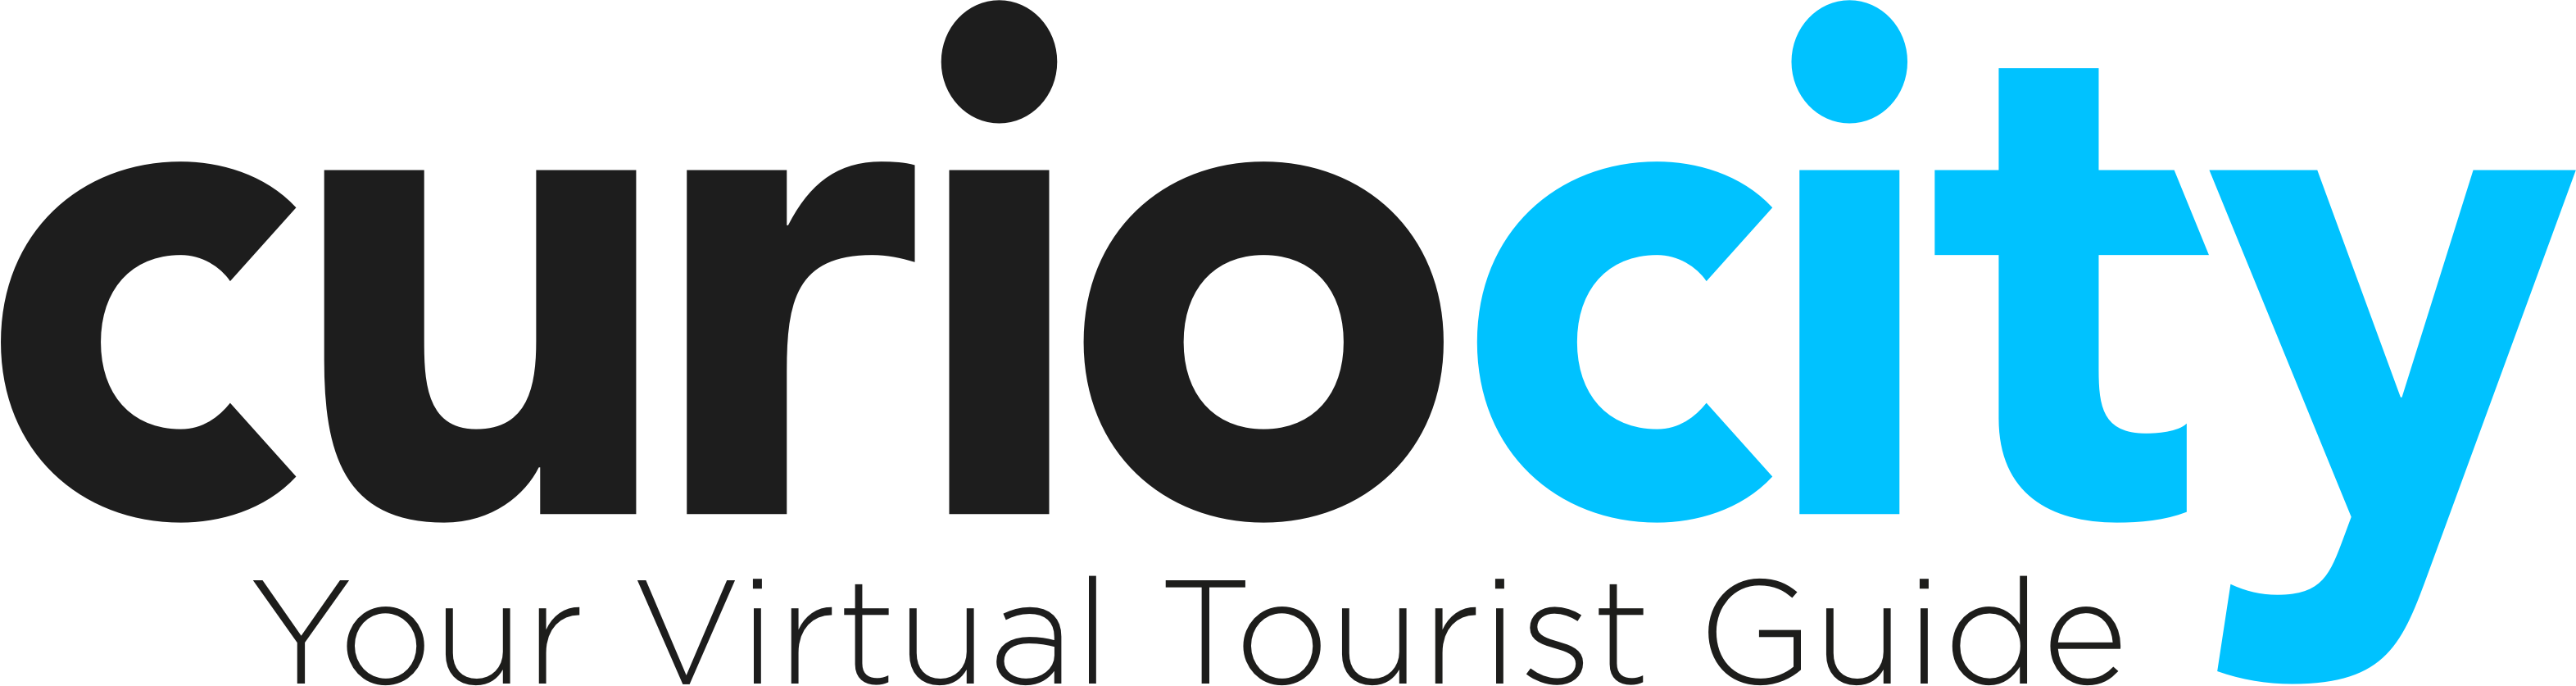 Your Virtual Tourist Guide